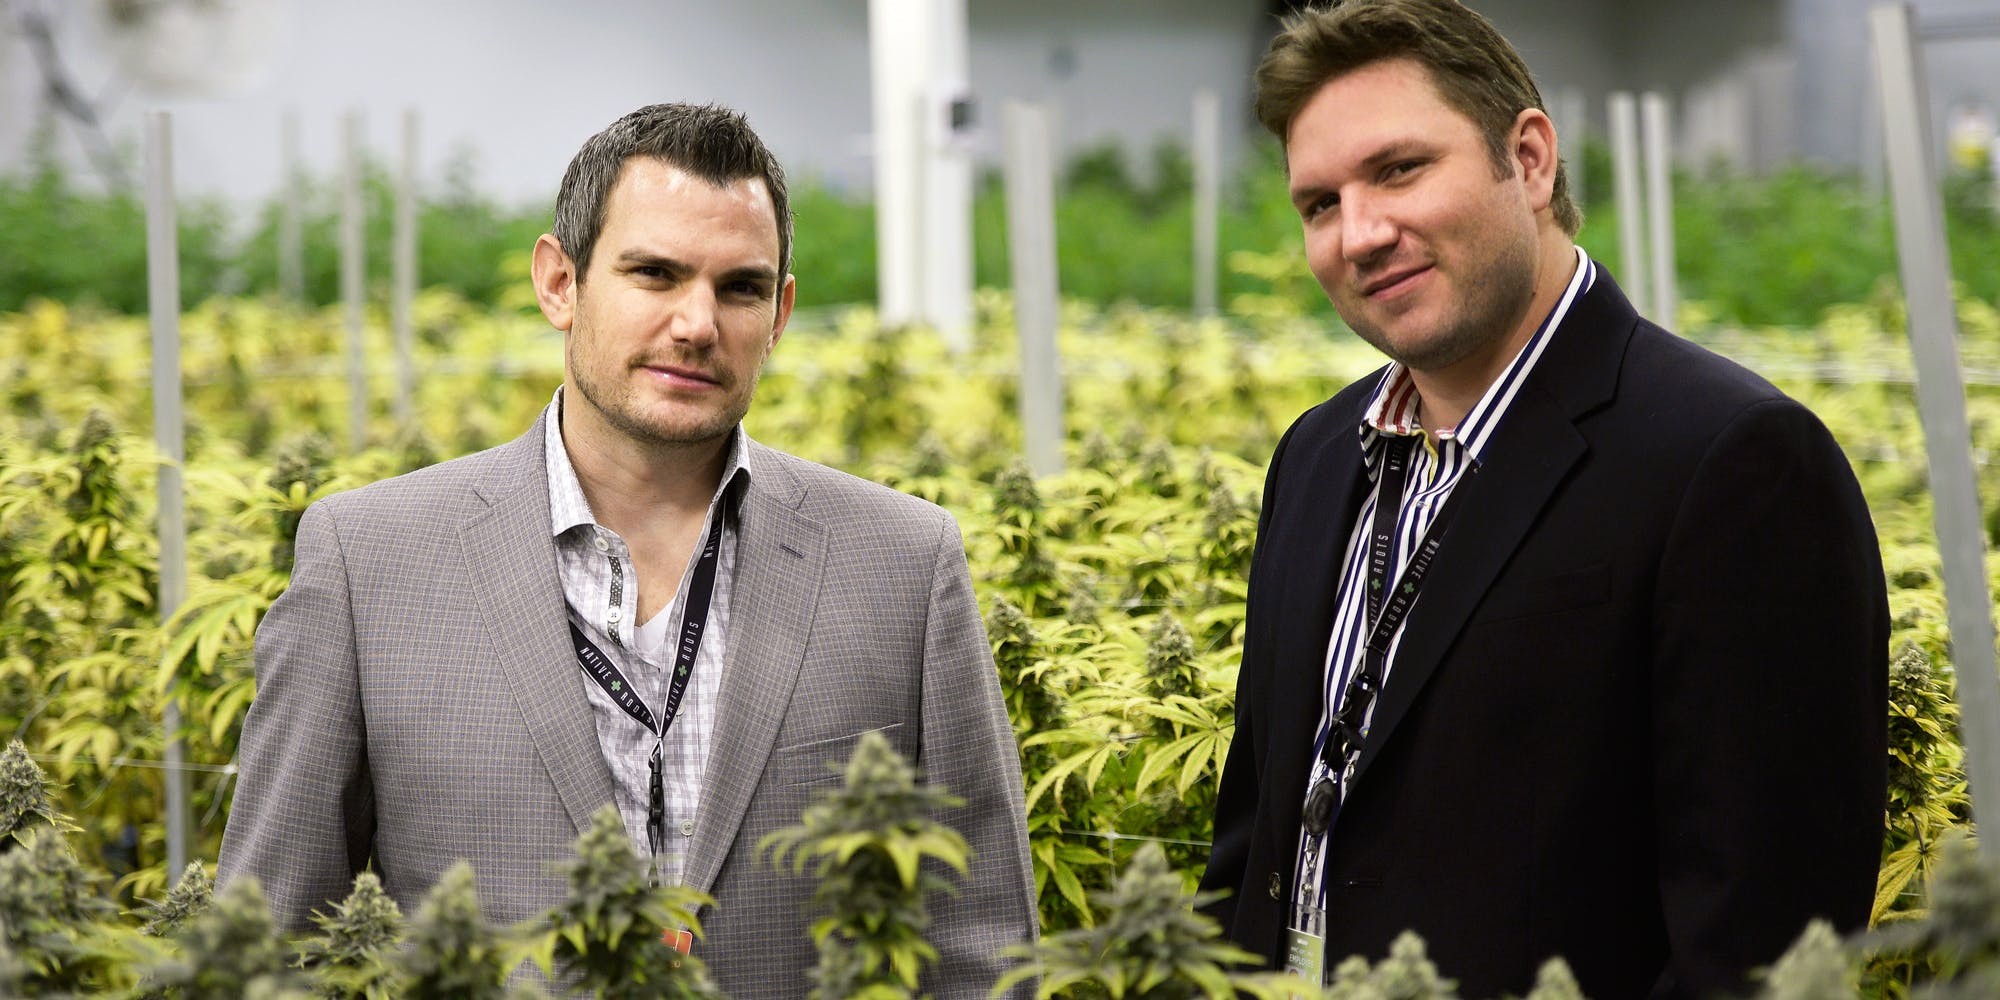 Harvard Study Finds Liberal Cannabis Policies Fuel Innovation